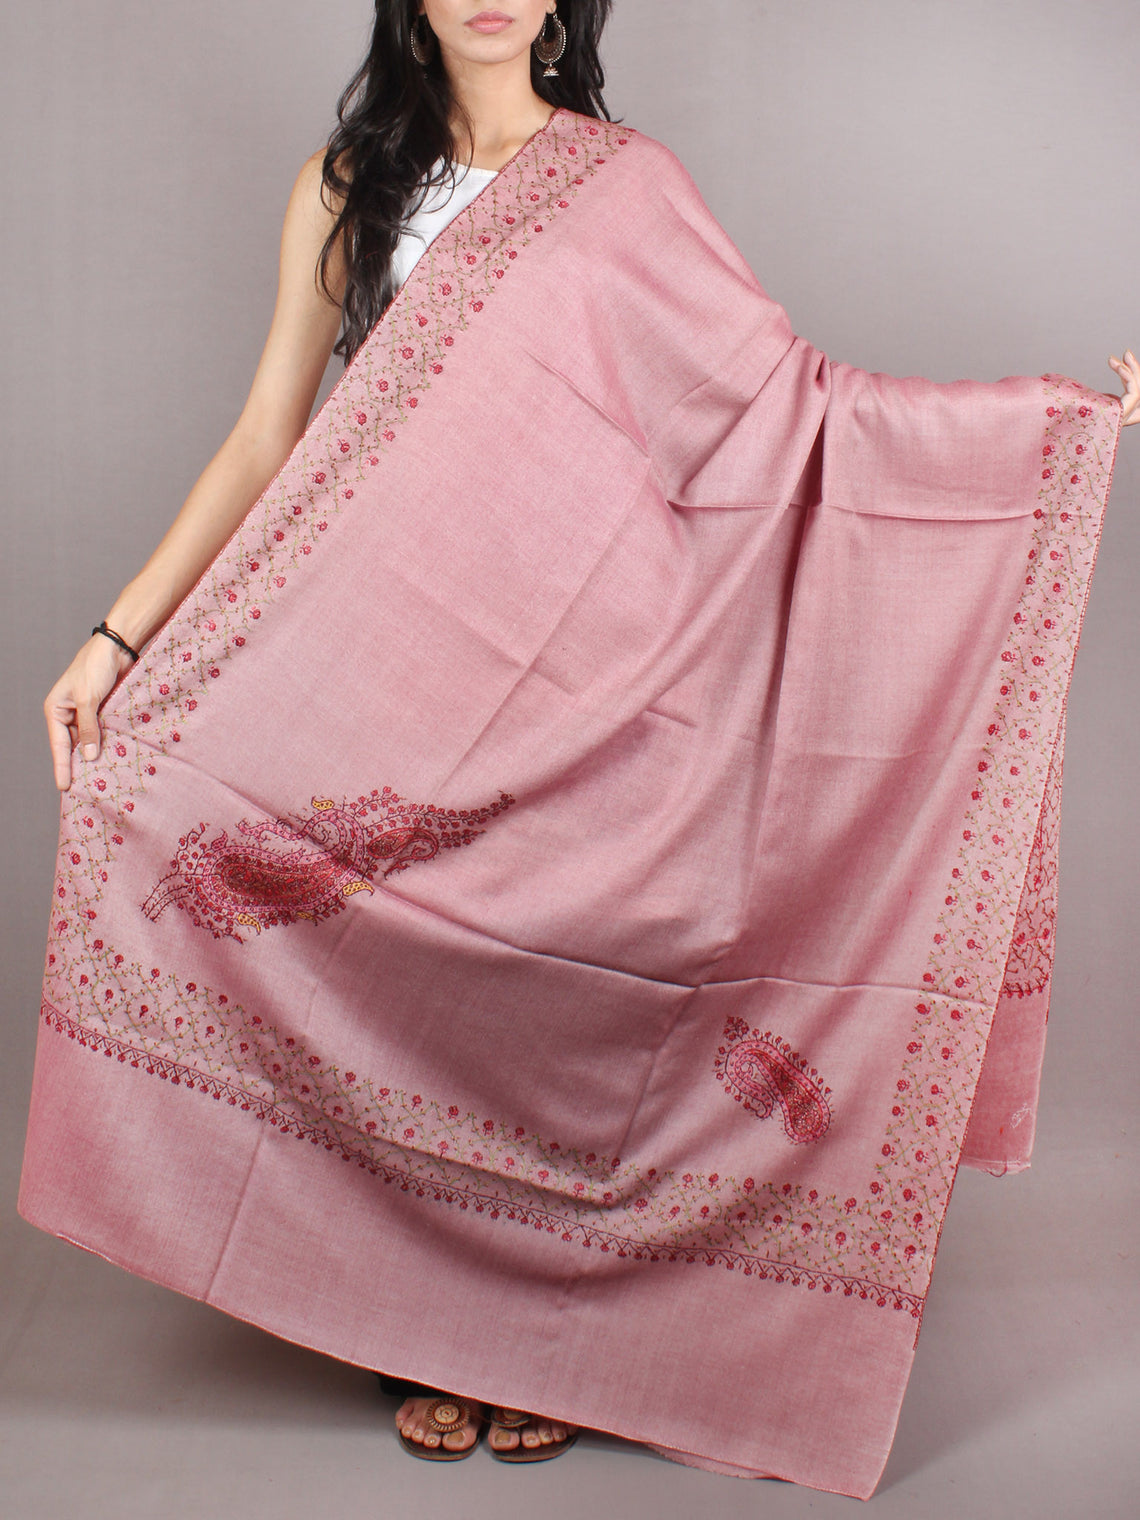 Thulian Pink Brown Red Pure Wool Jalidour Koundar Cashmere Shawl From Kashmir - S200405